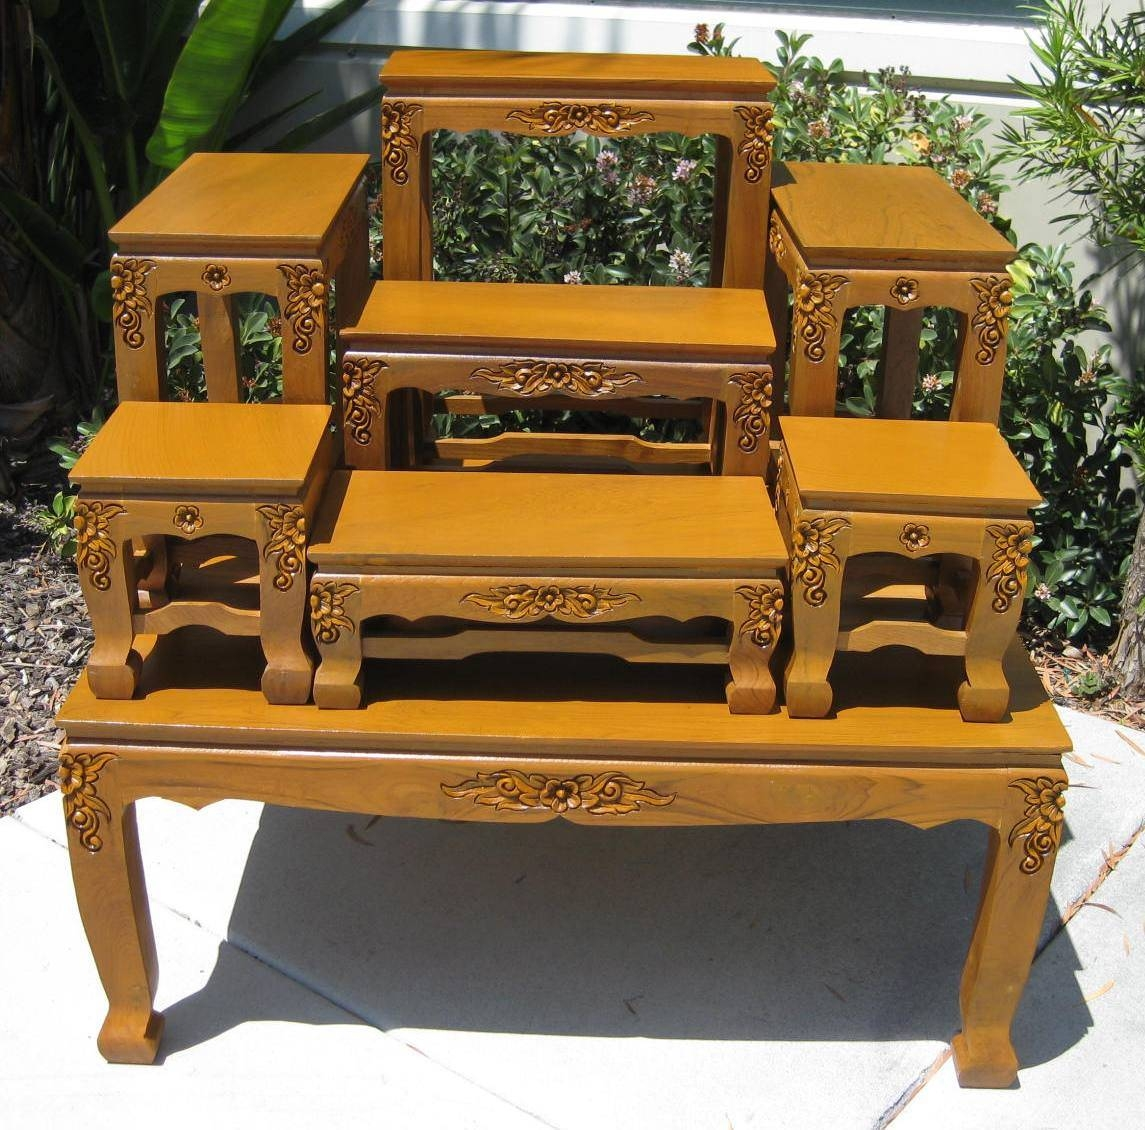 Hand Carved Coffee Tables, Opium Legs Tables, End Tables, Buddhist regarding Buddha Coffee Tables (Image 19 of 30)